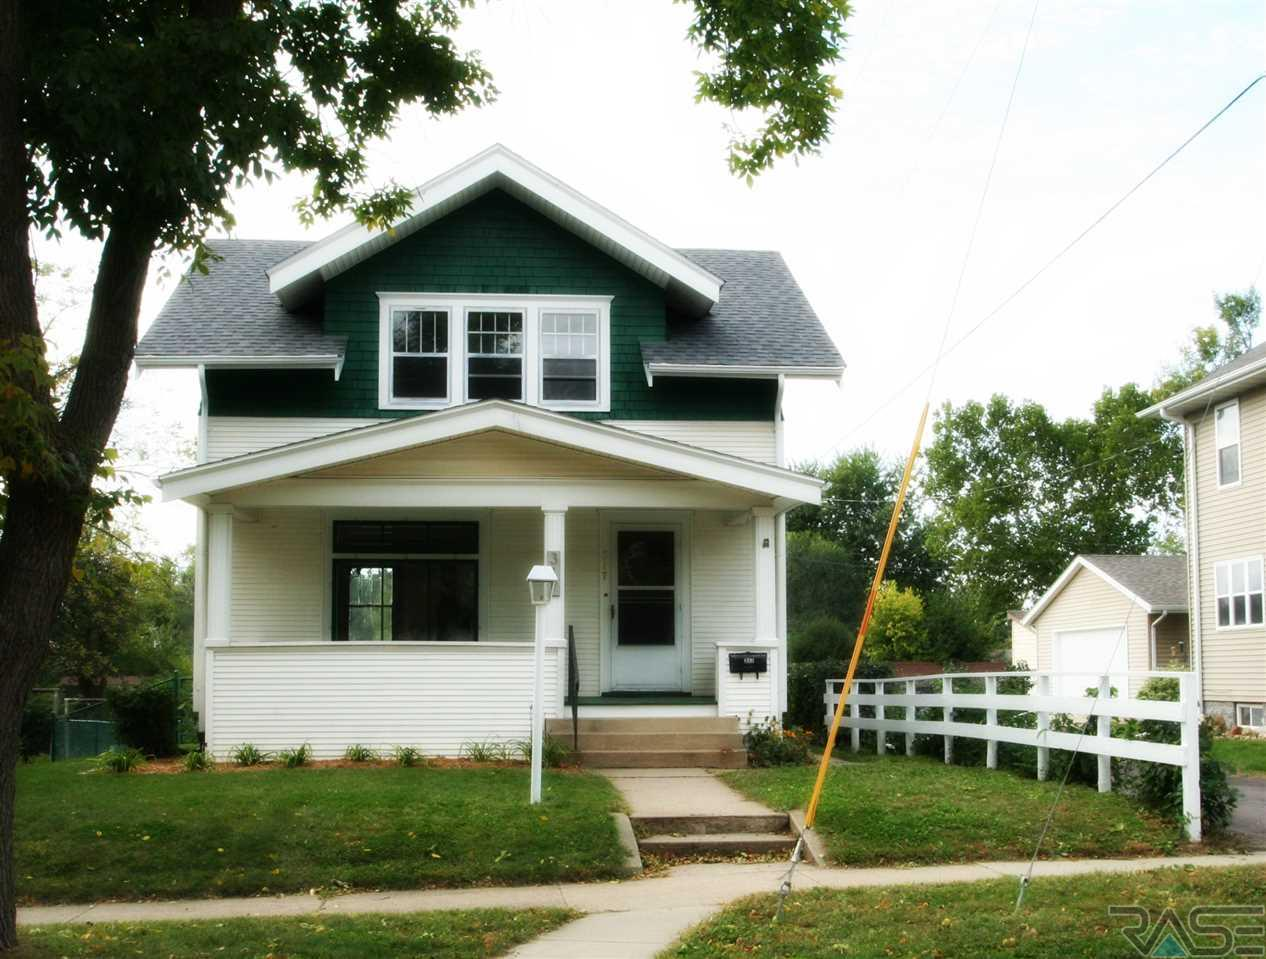 317 N Trapp Ave, SIOUX FALLS